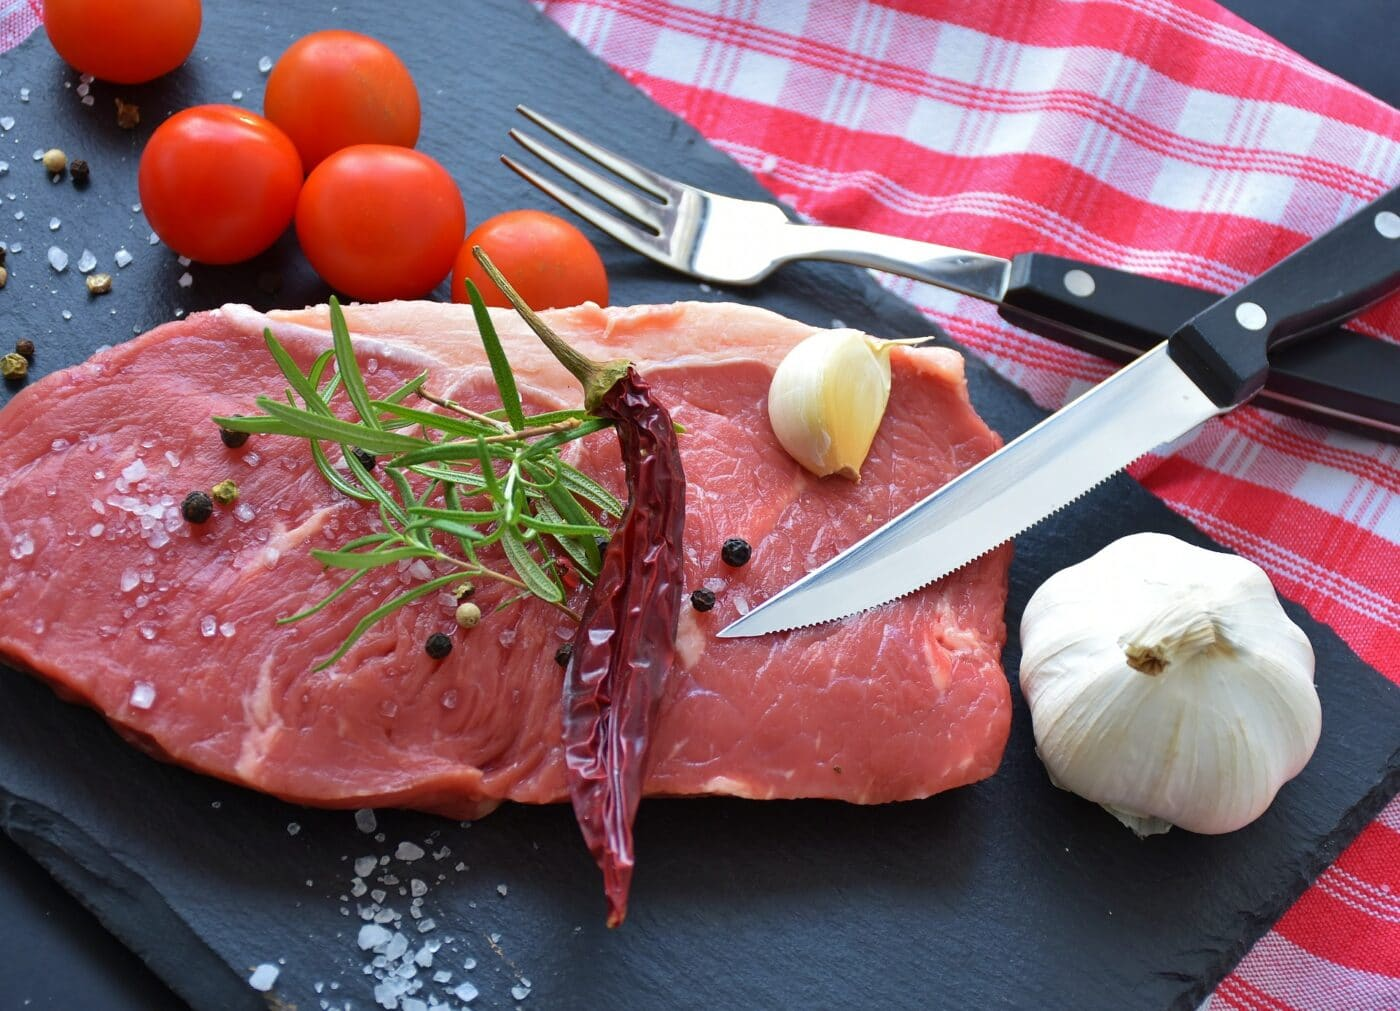 Home processed meat with knife, fork, and herbs